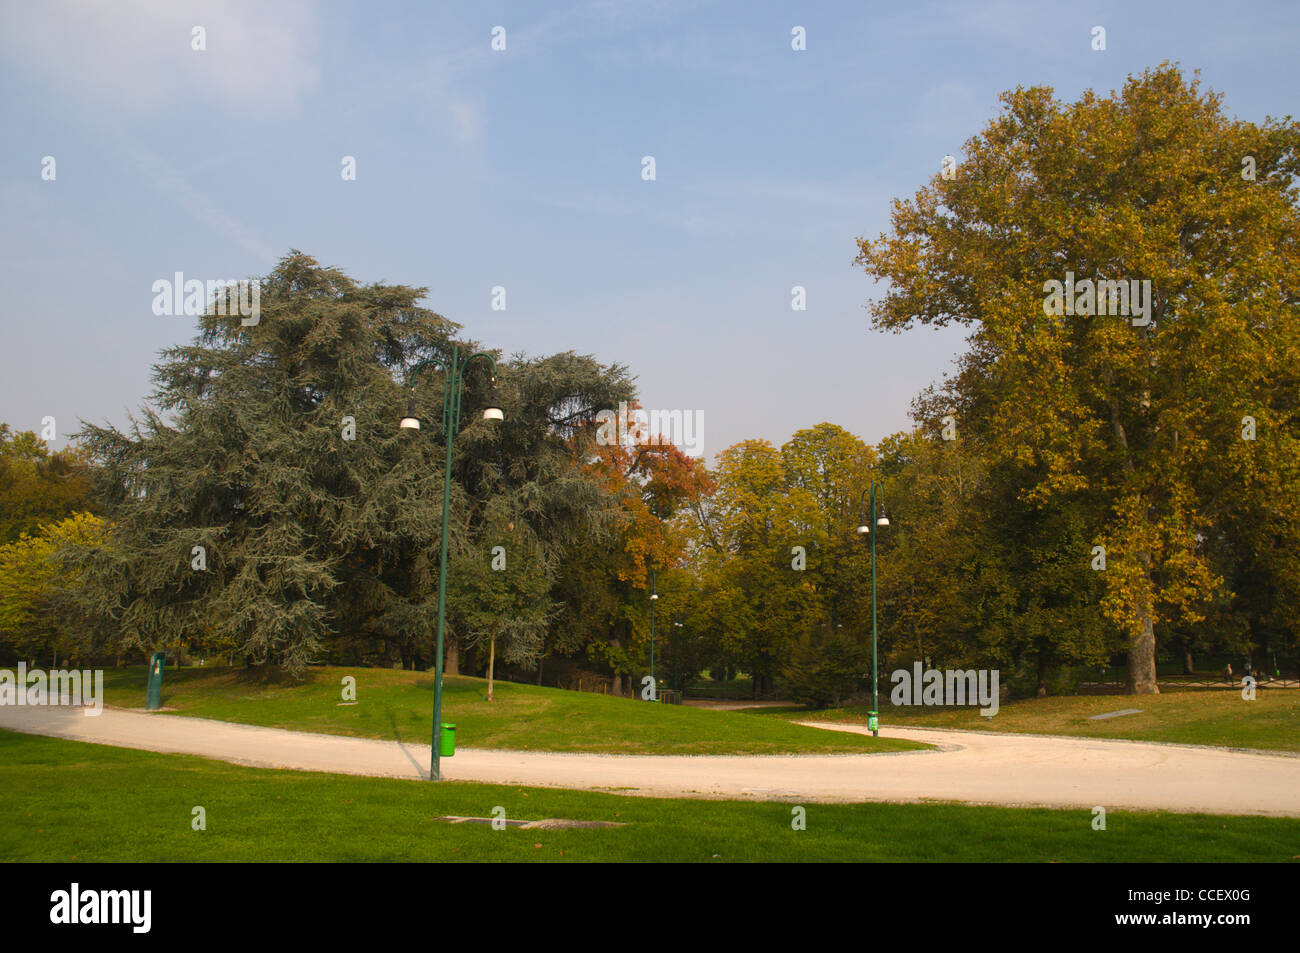 Parco Sempione park central Milan Lombardy region Italy Europe - Stock Image